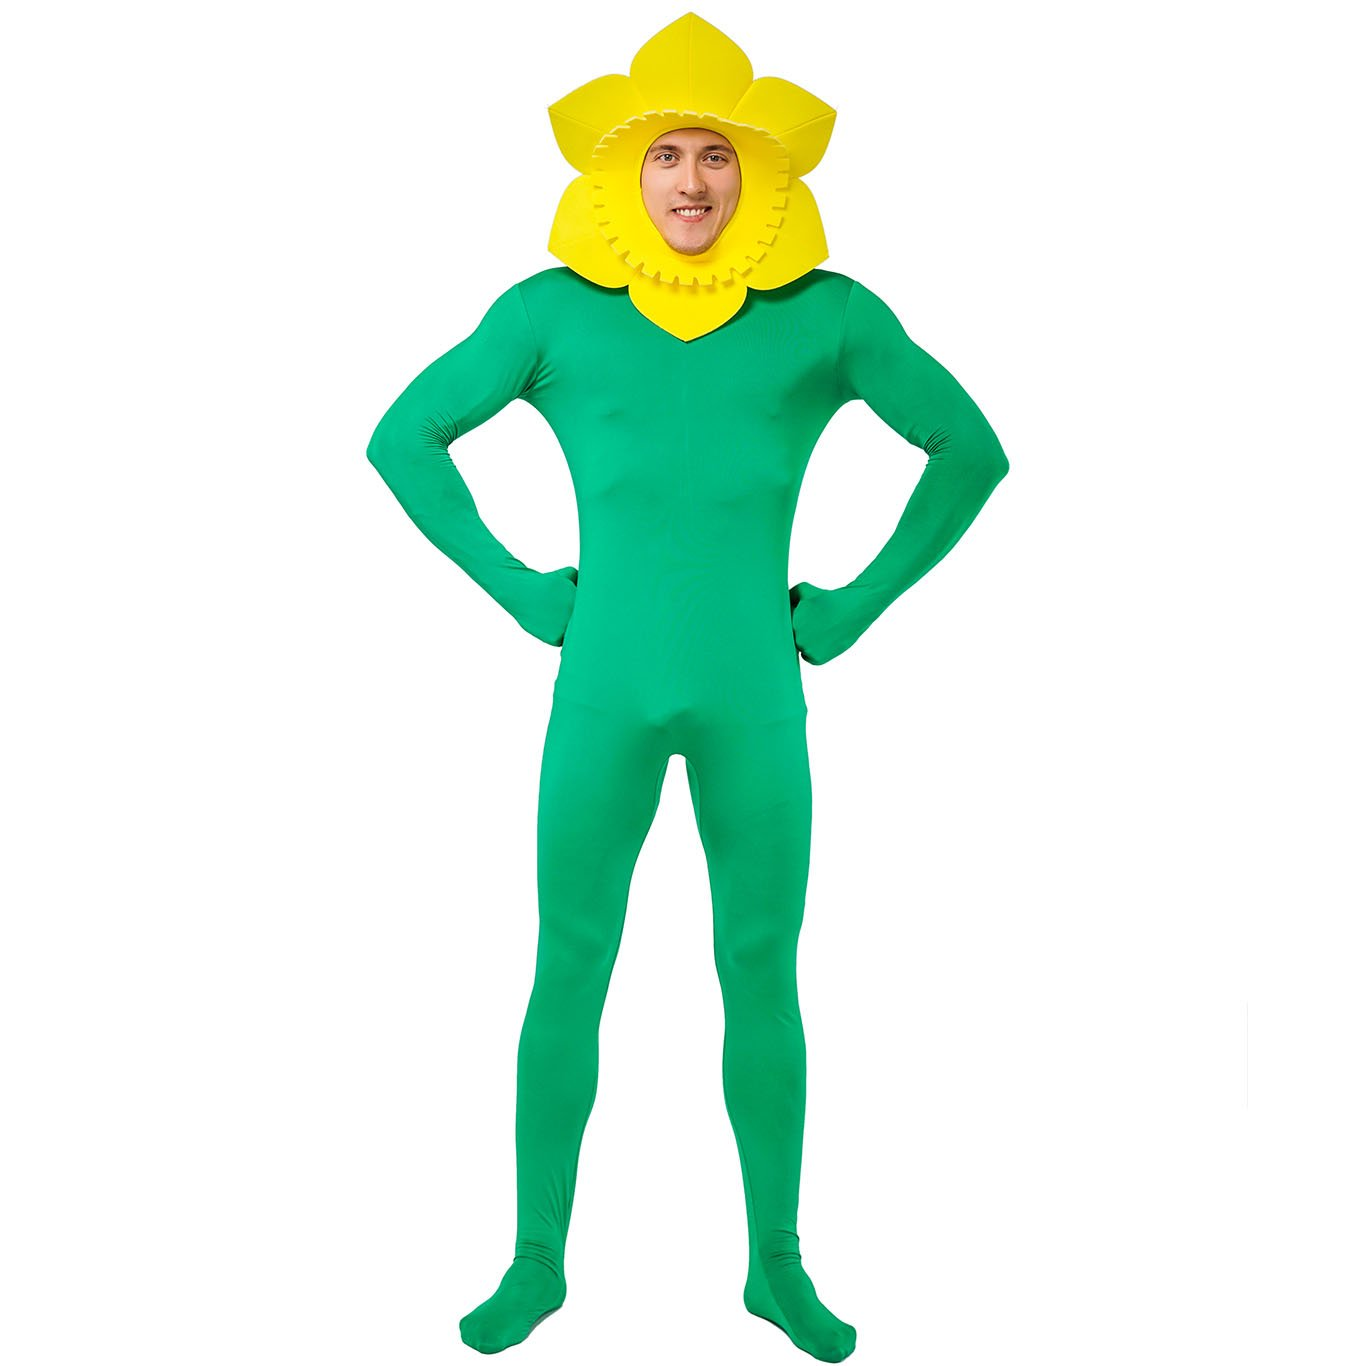 DSplay Adult Men's Bodysuit Sunflower Costumes Green,Yellow by DSplay